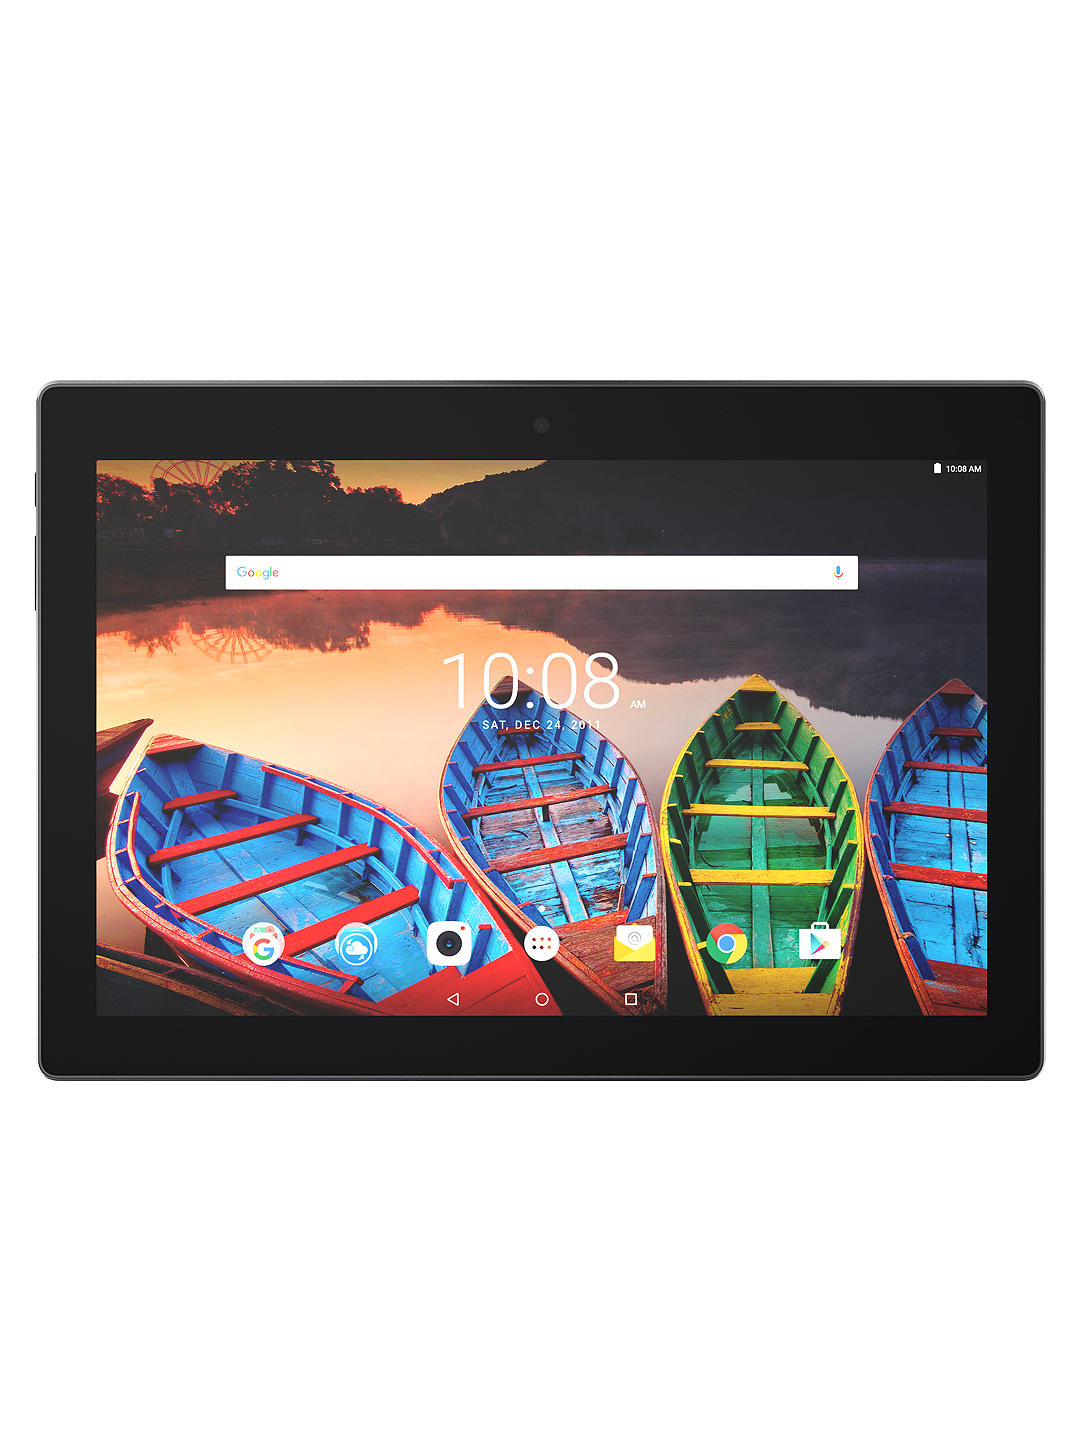 Lenovo Tab 3 Plus FHD 10 inch, 16GB Tablet, Black (refurbished)